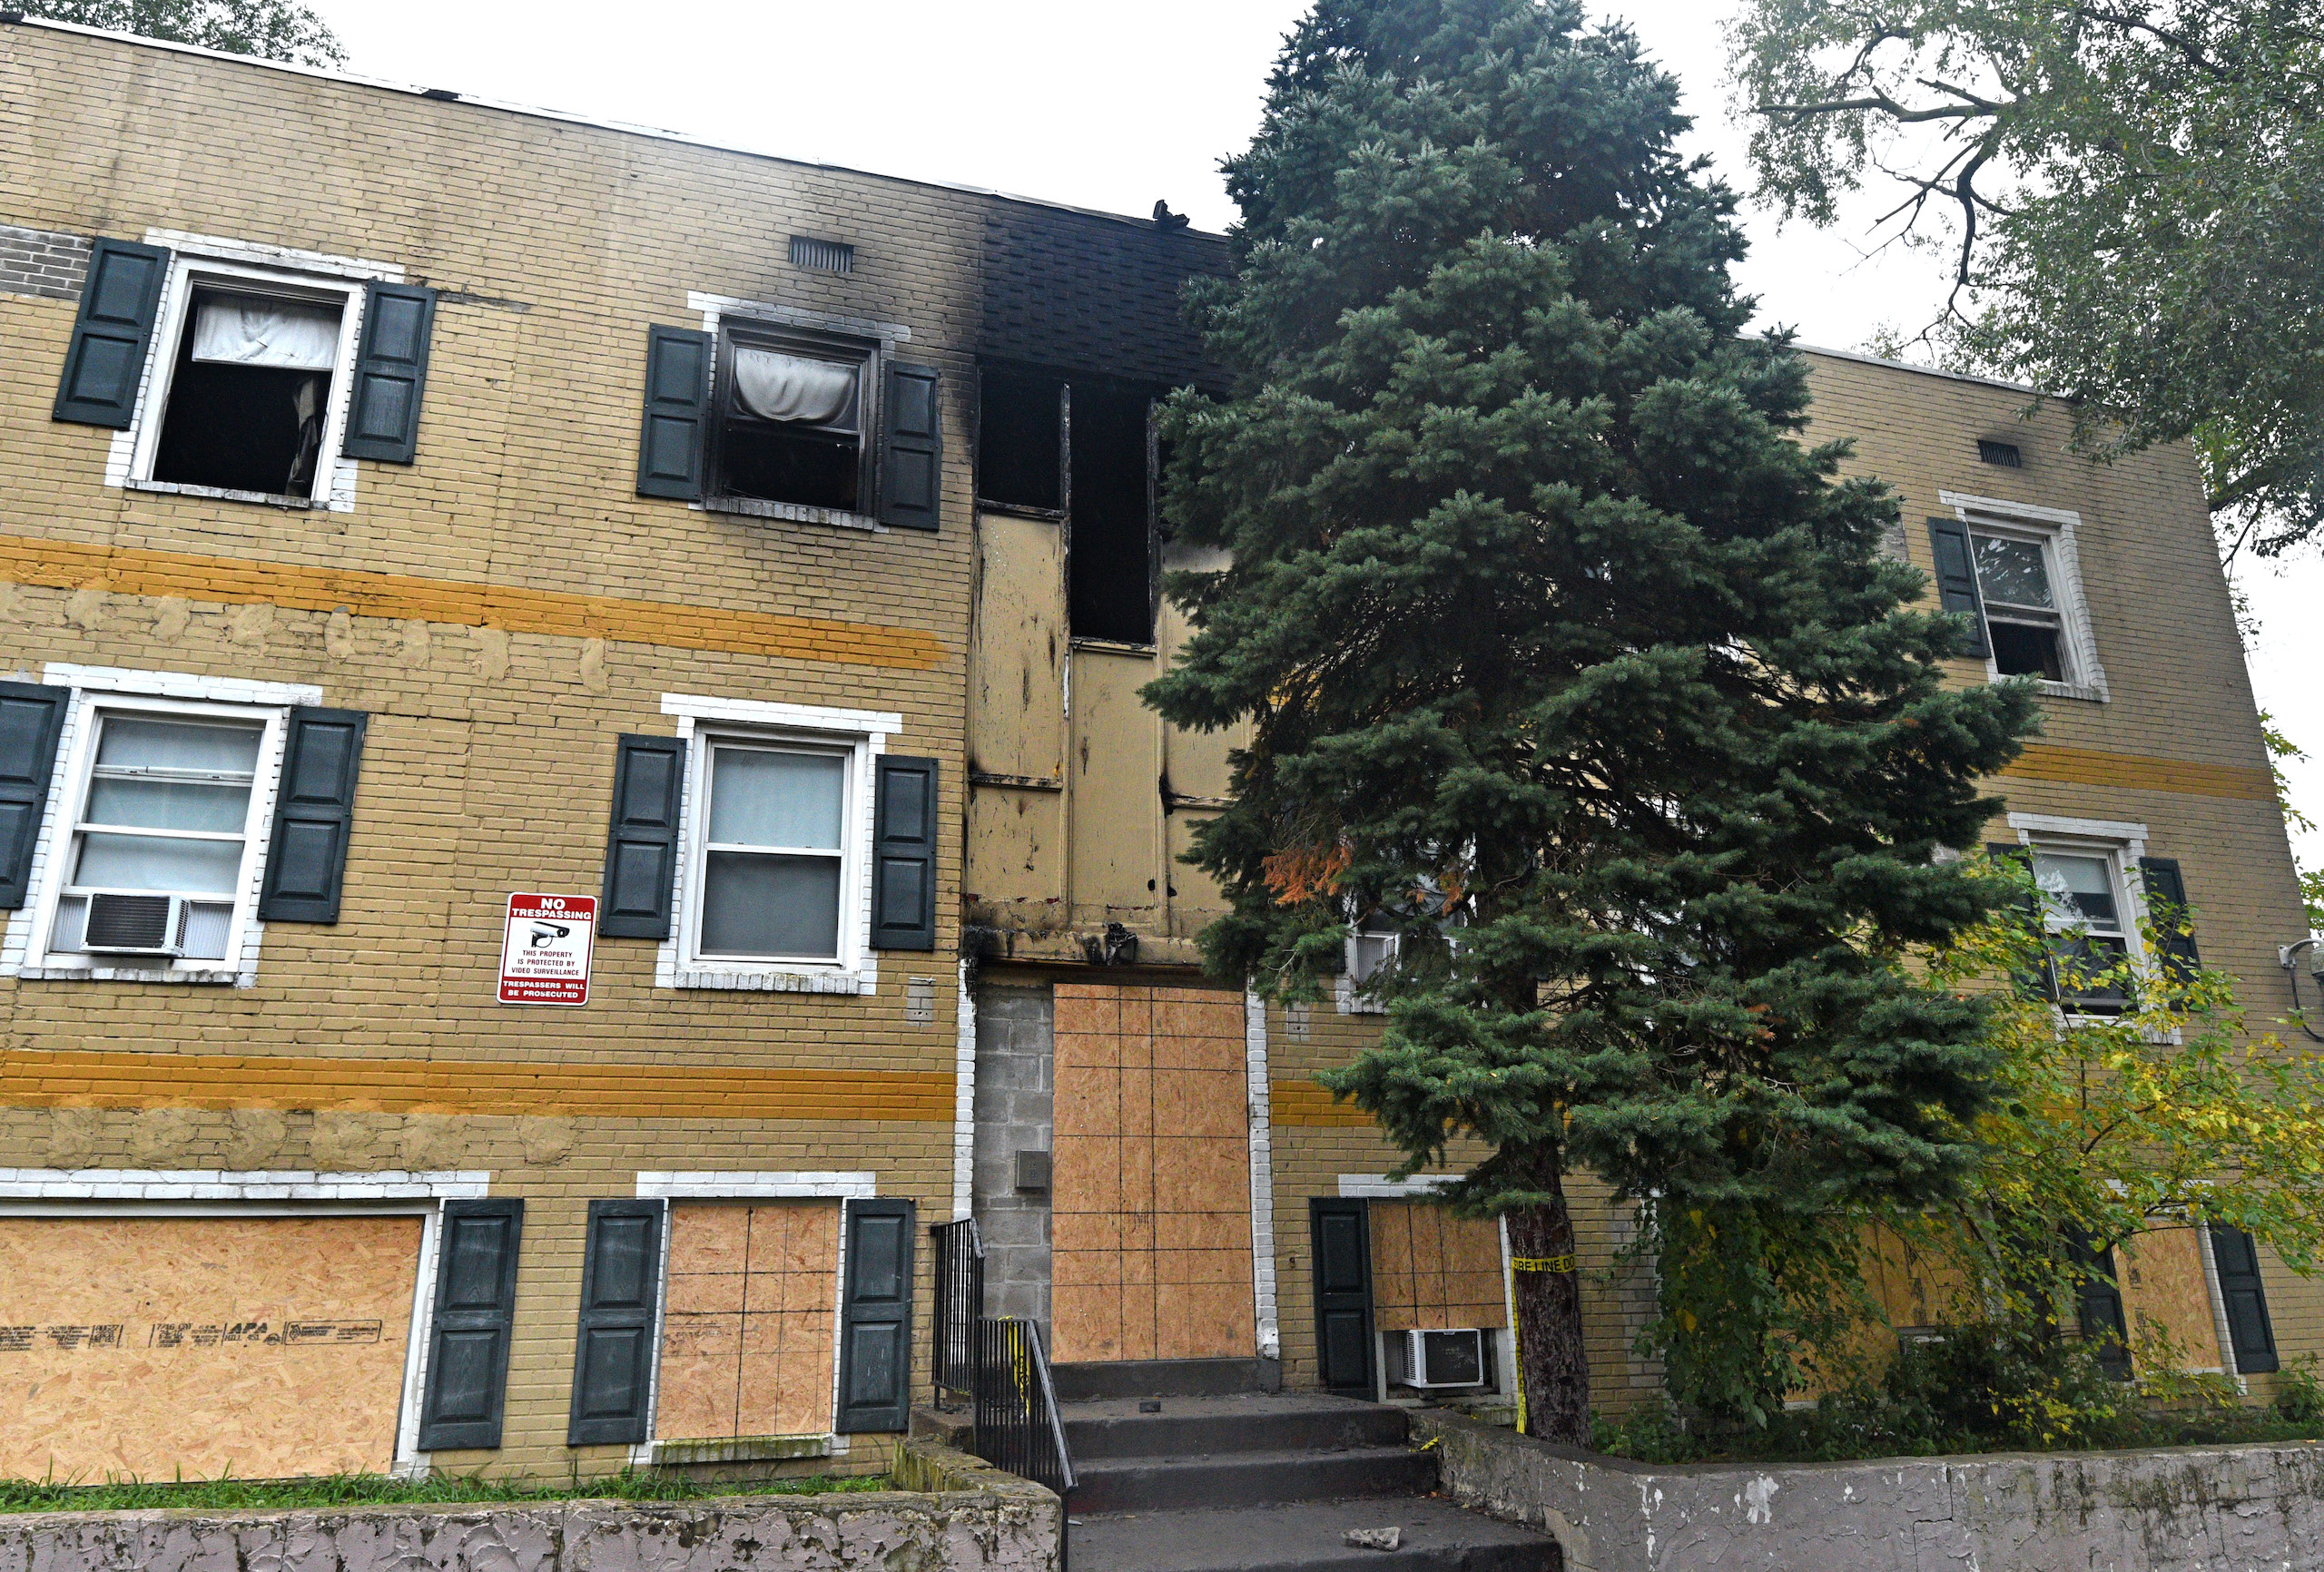 The gutted Cra-West Apartments in Camden, after a three-alarm fire on Oct. 25.